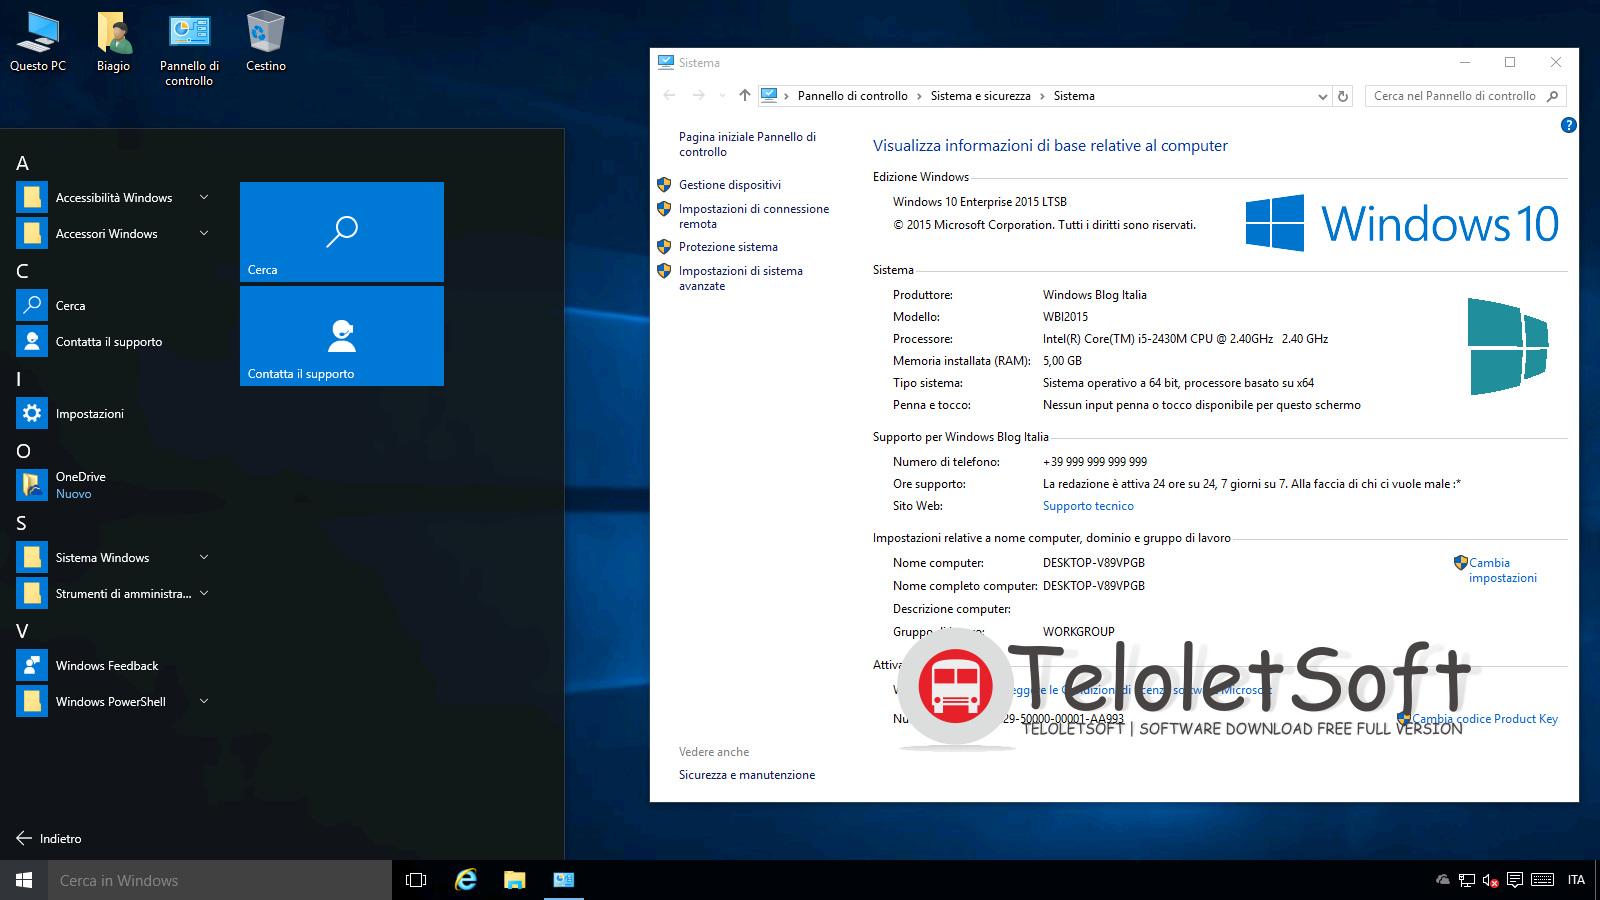 windows 10 download iso 64 bit with crack full version blogspot